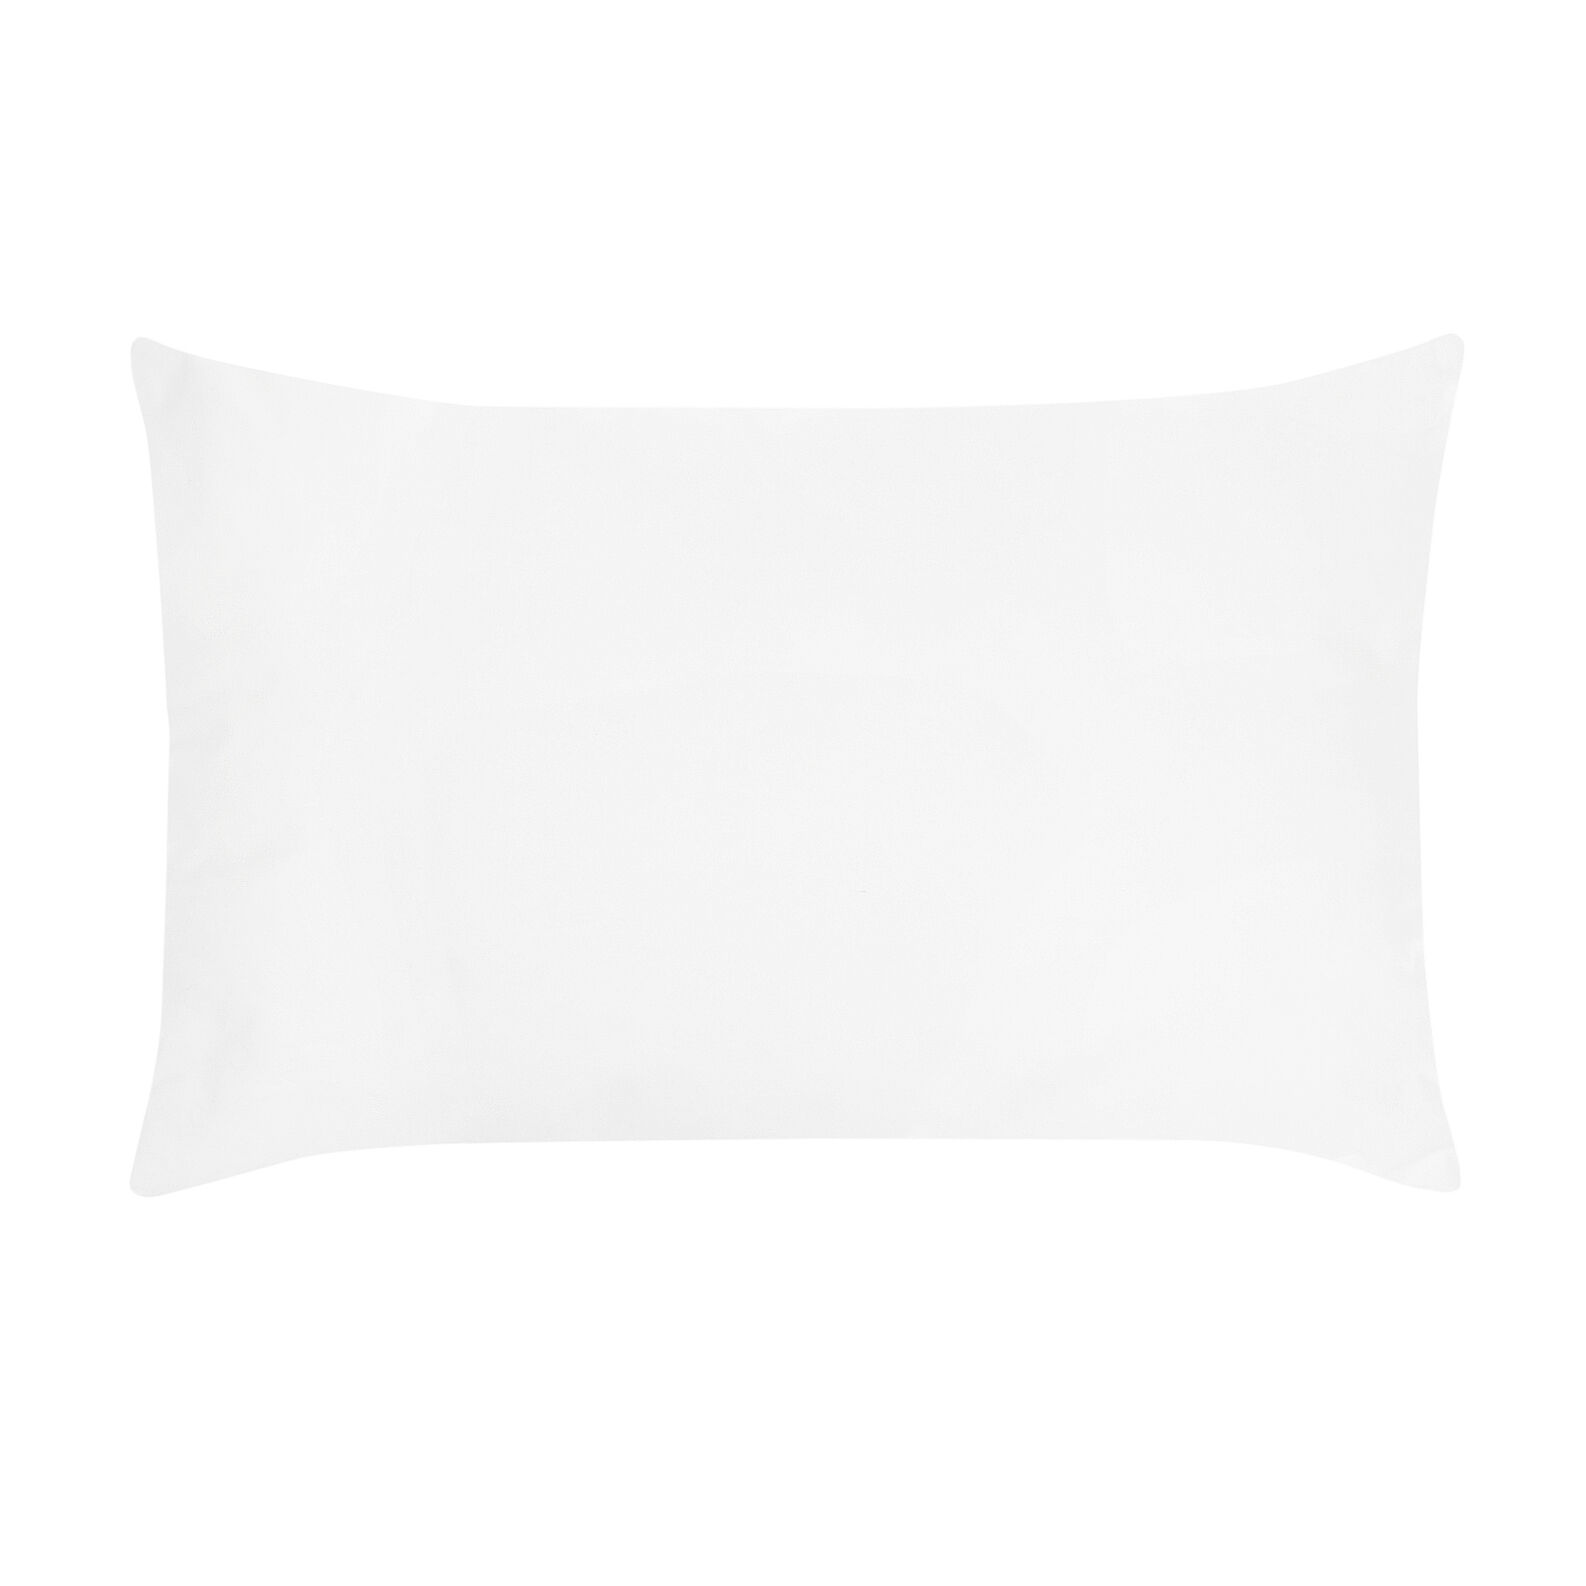 Child's pillow with microsphere padding